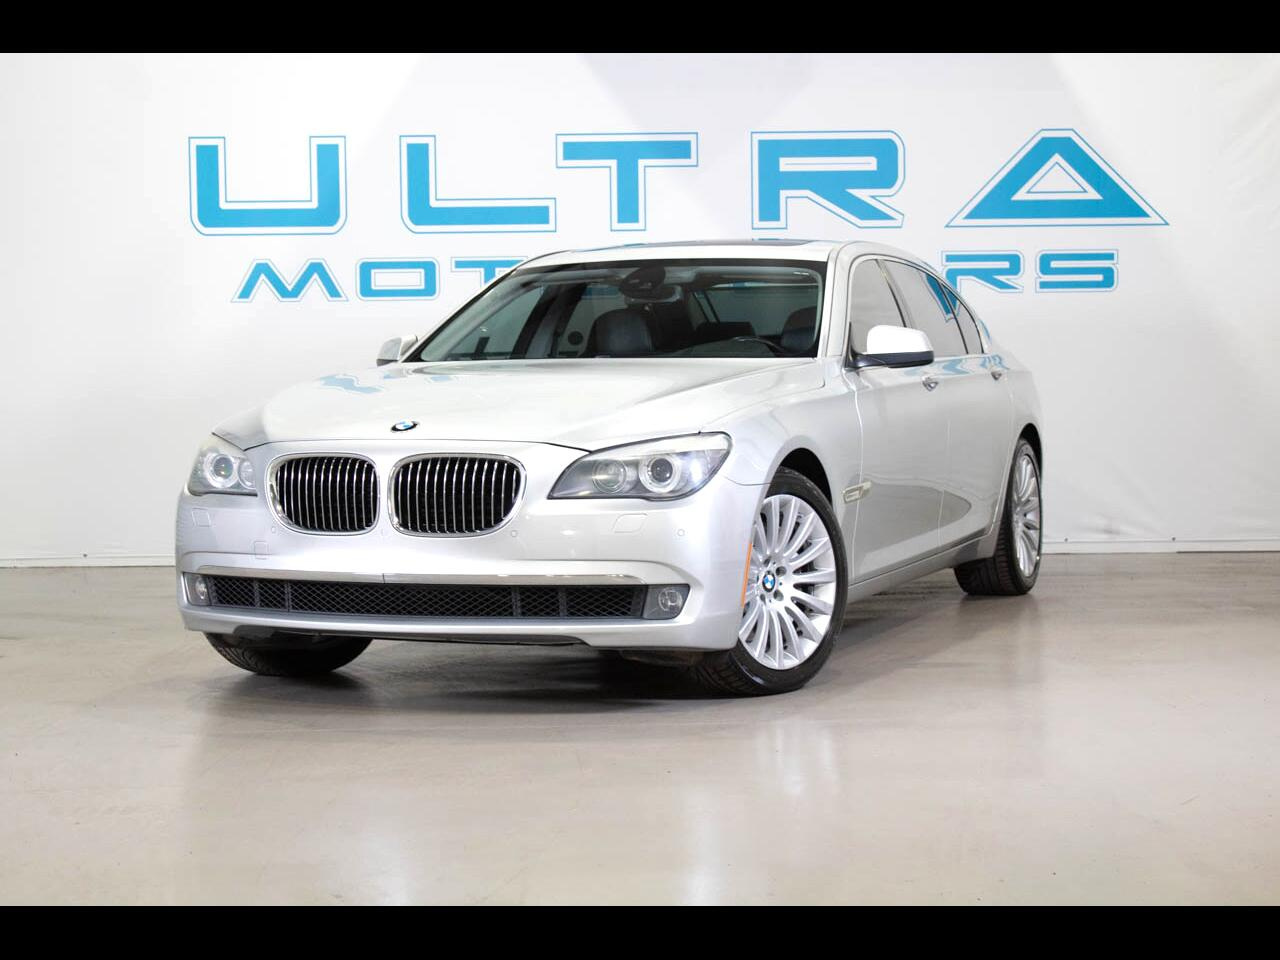 2009 Bmw 750li For Sale >> Used 2009 Bmw 7 Series 750li For Sale In Birmingham Al 35233